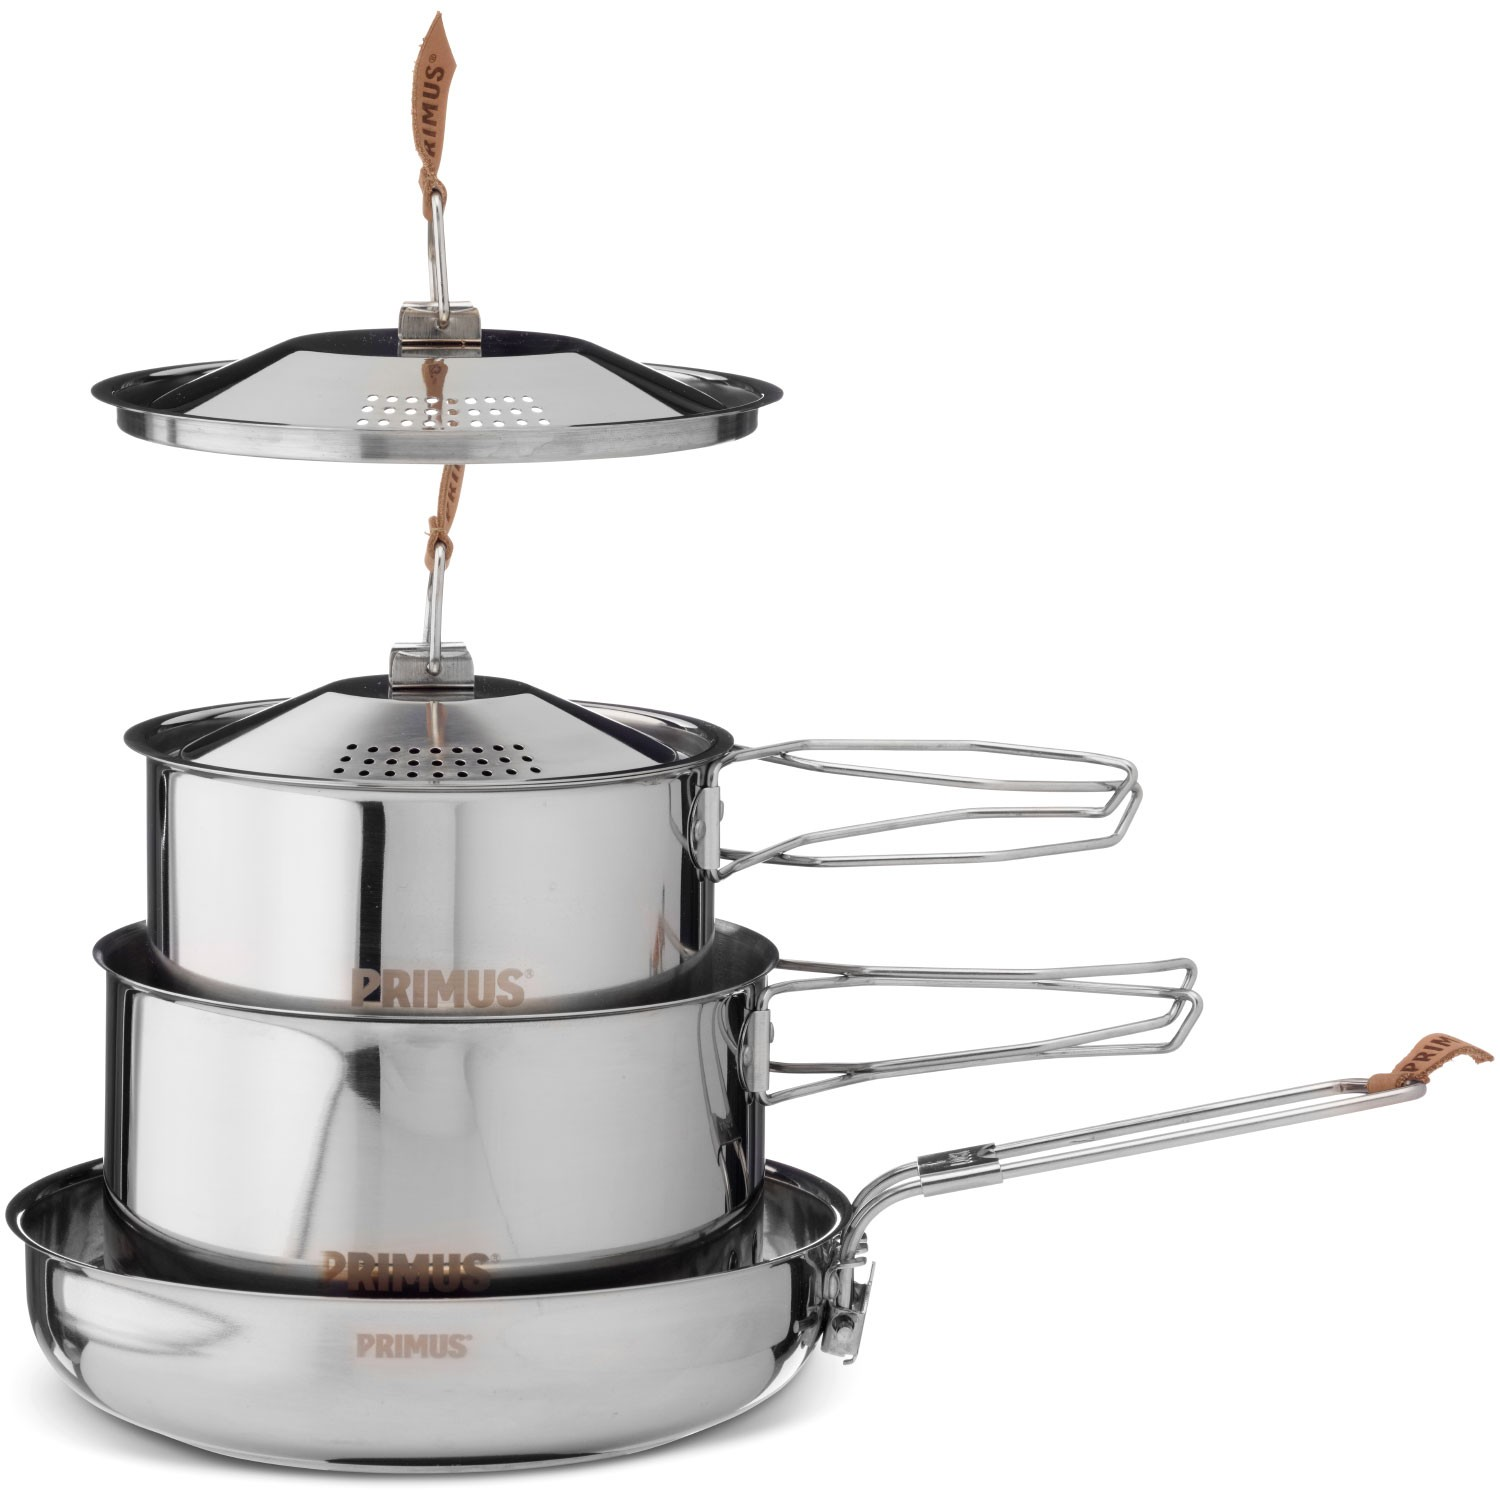 Primus Campfire Stainless Steel Cookset - Small